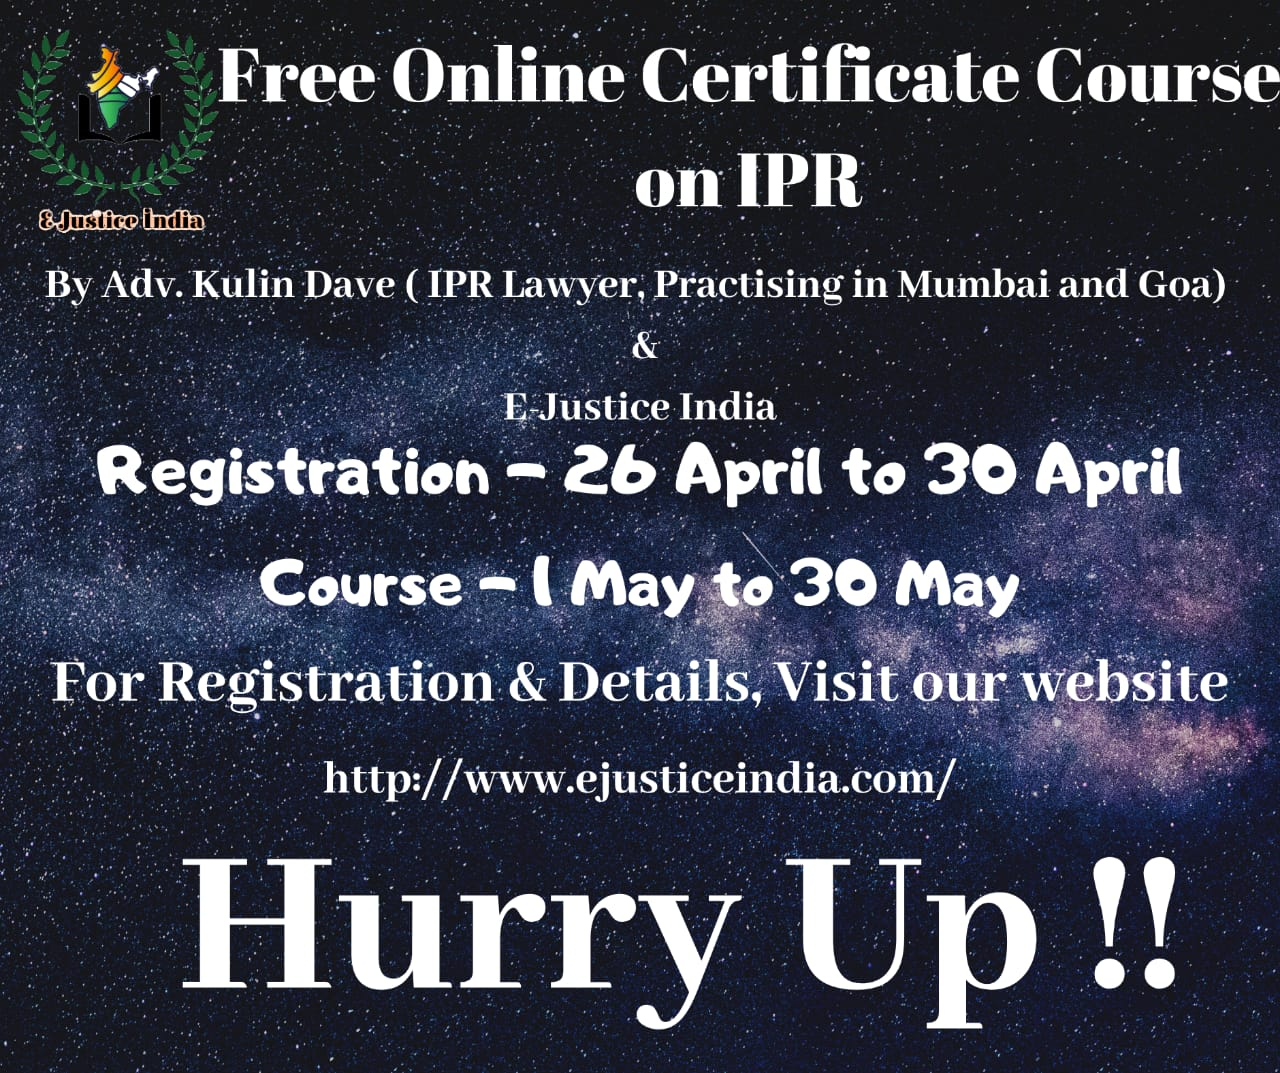 Free Online Certificate Course on IPR by E-Justice India : 1st Batch